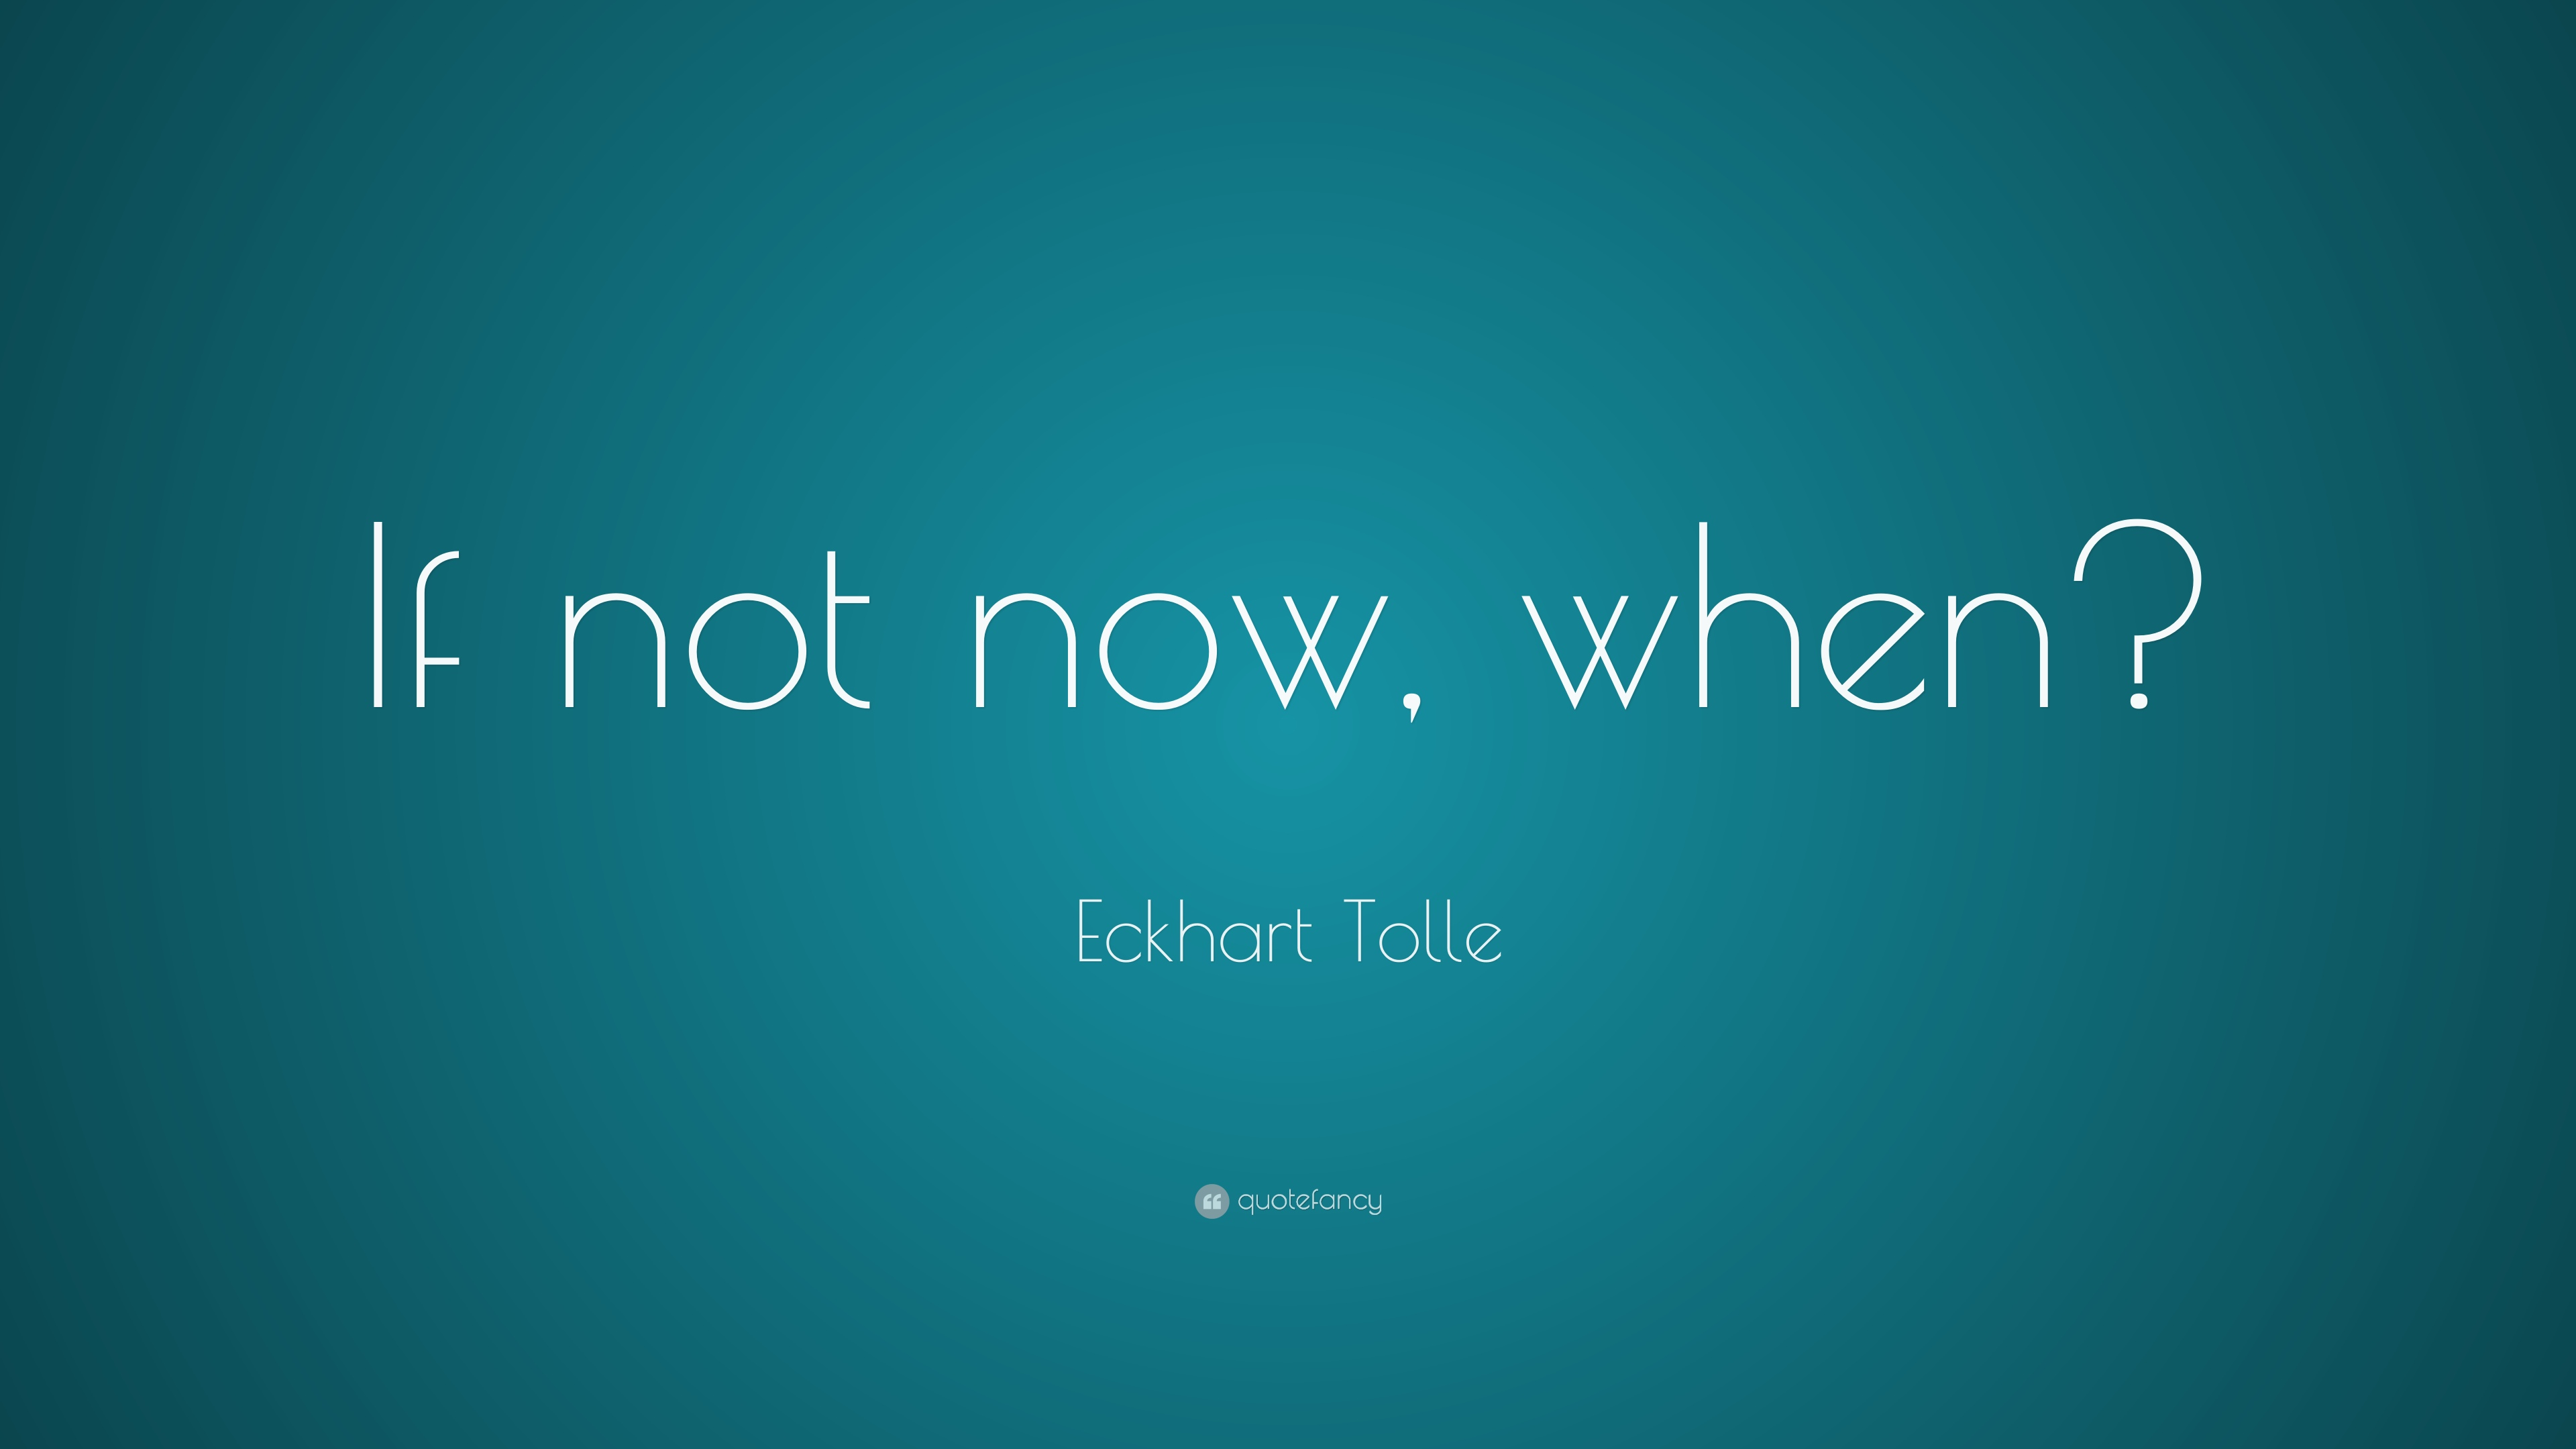 eckhart tolle quotes about life